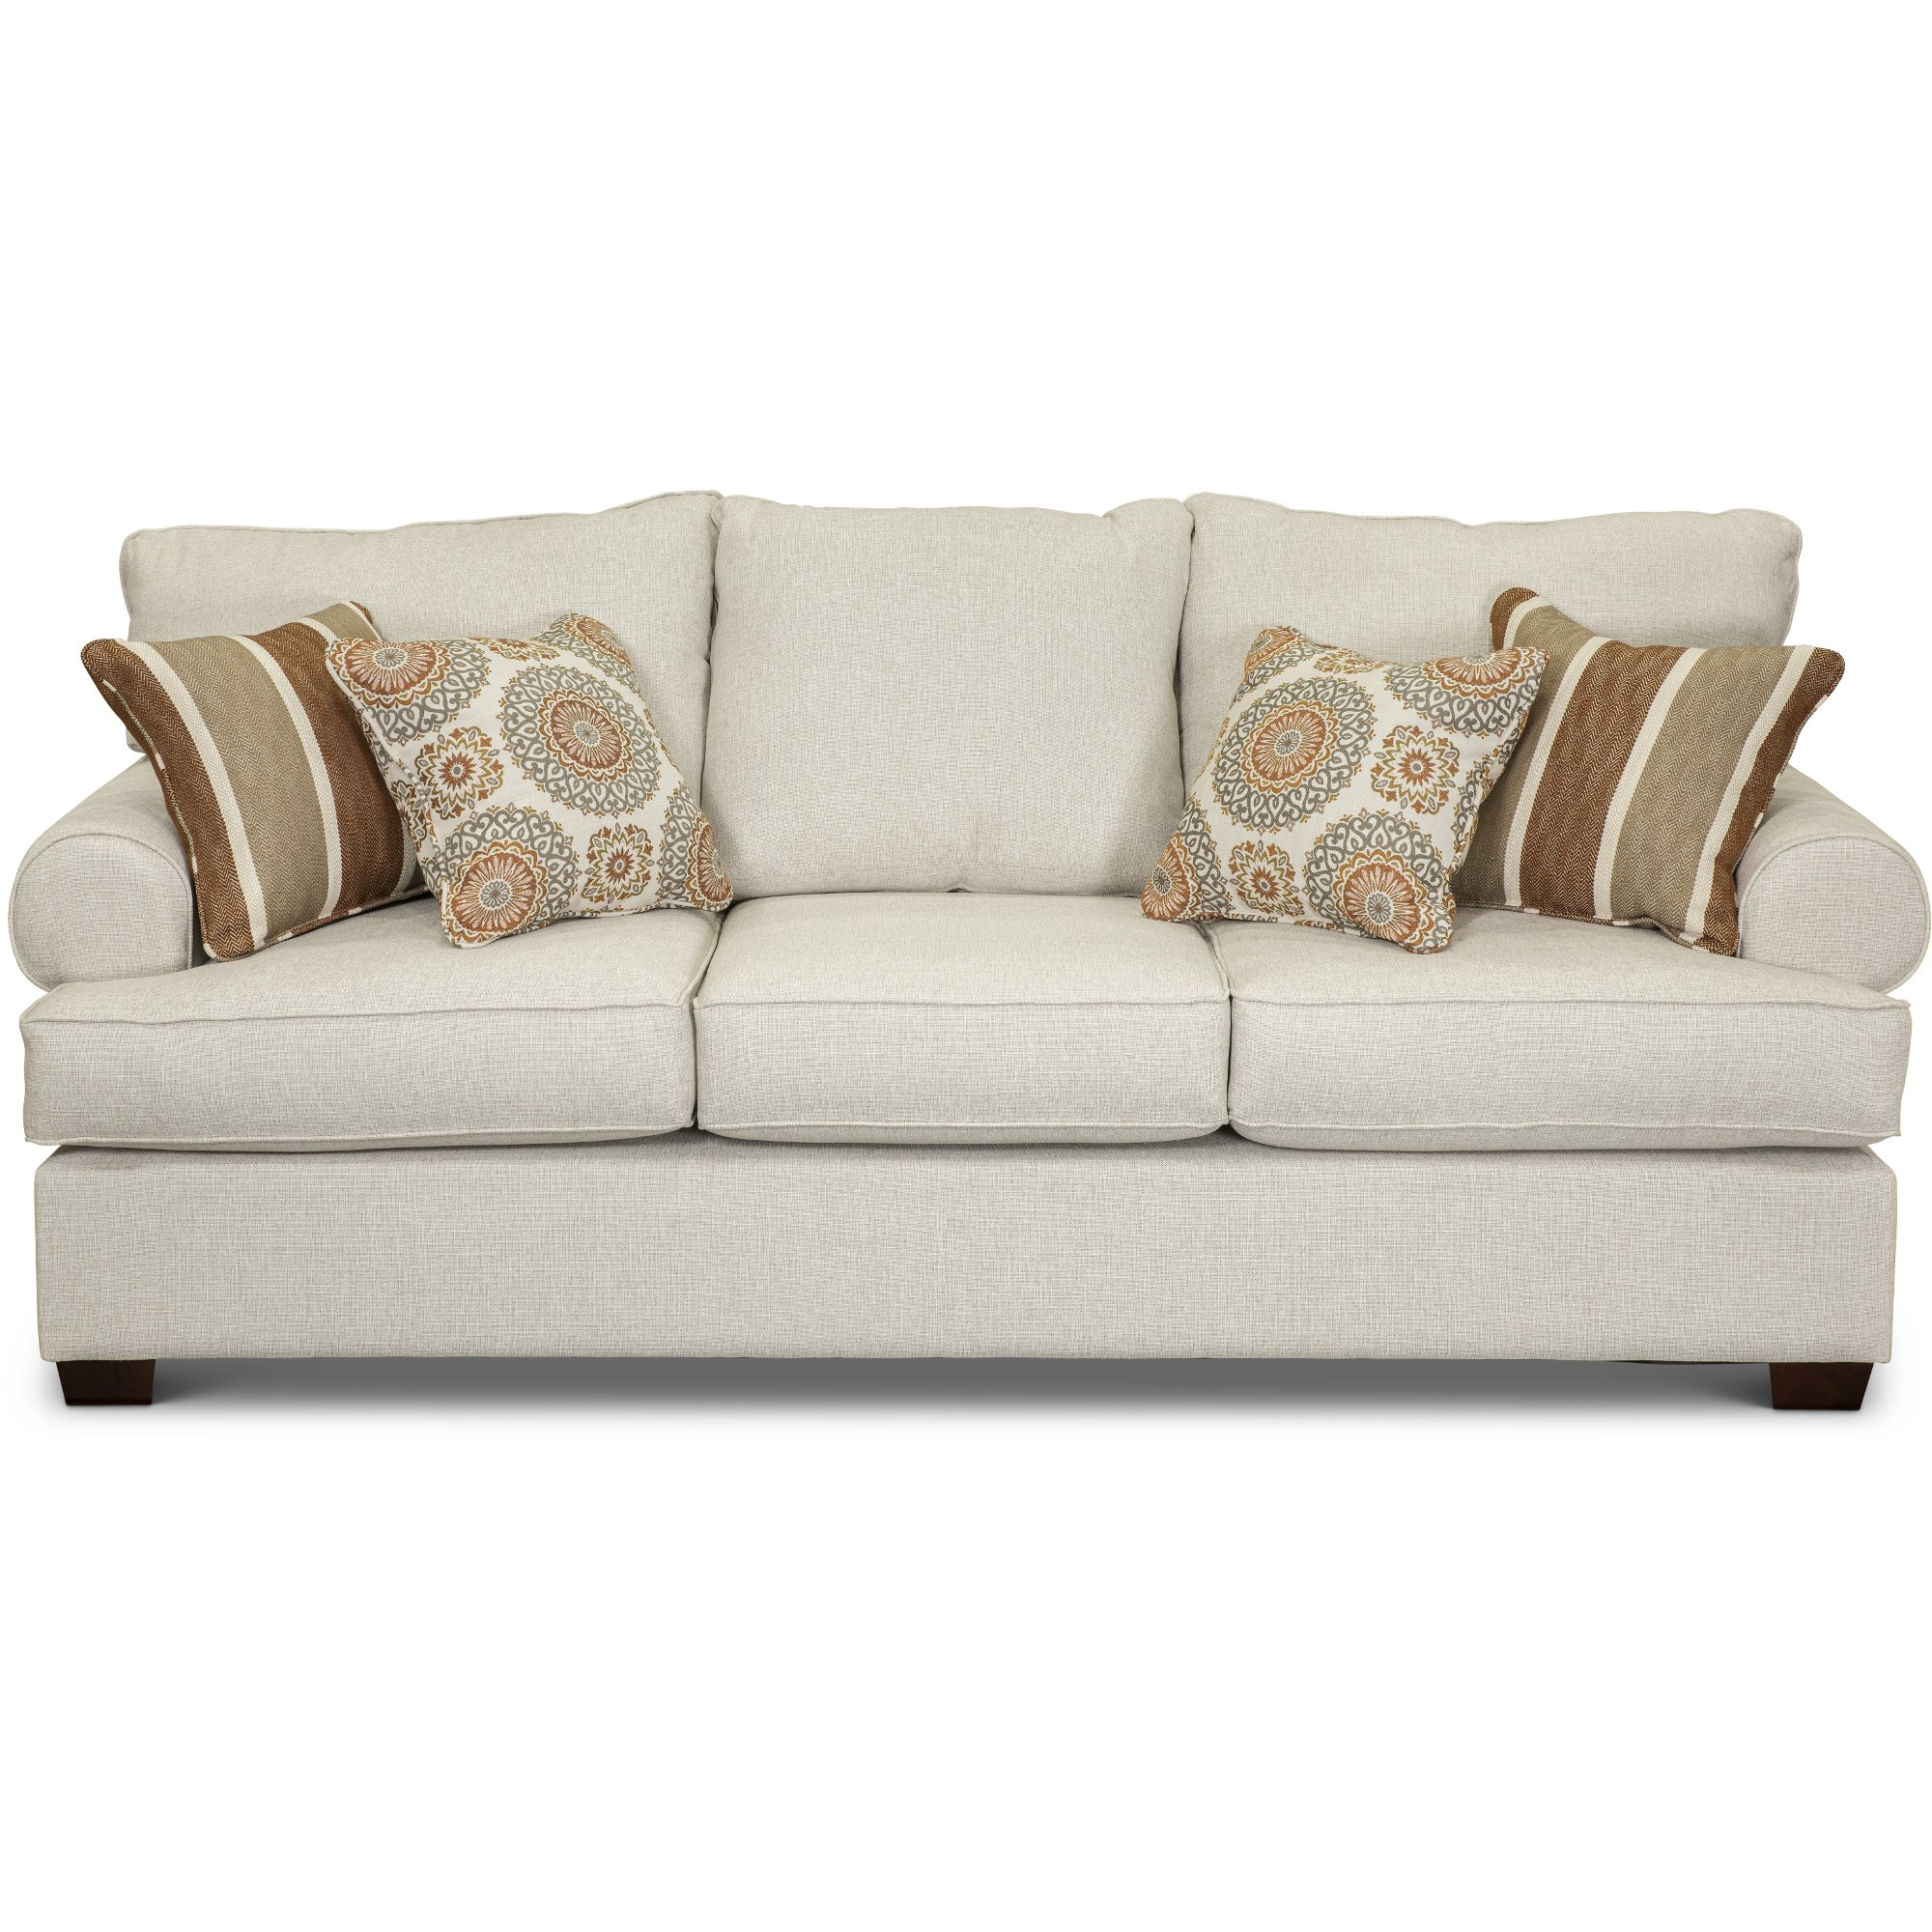 Hutton sofa rc willey for Sofa table rc willey